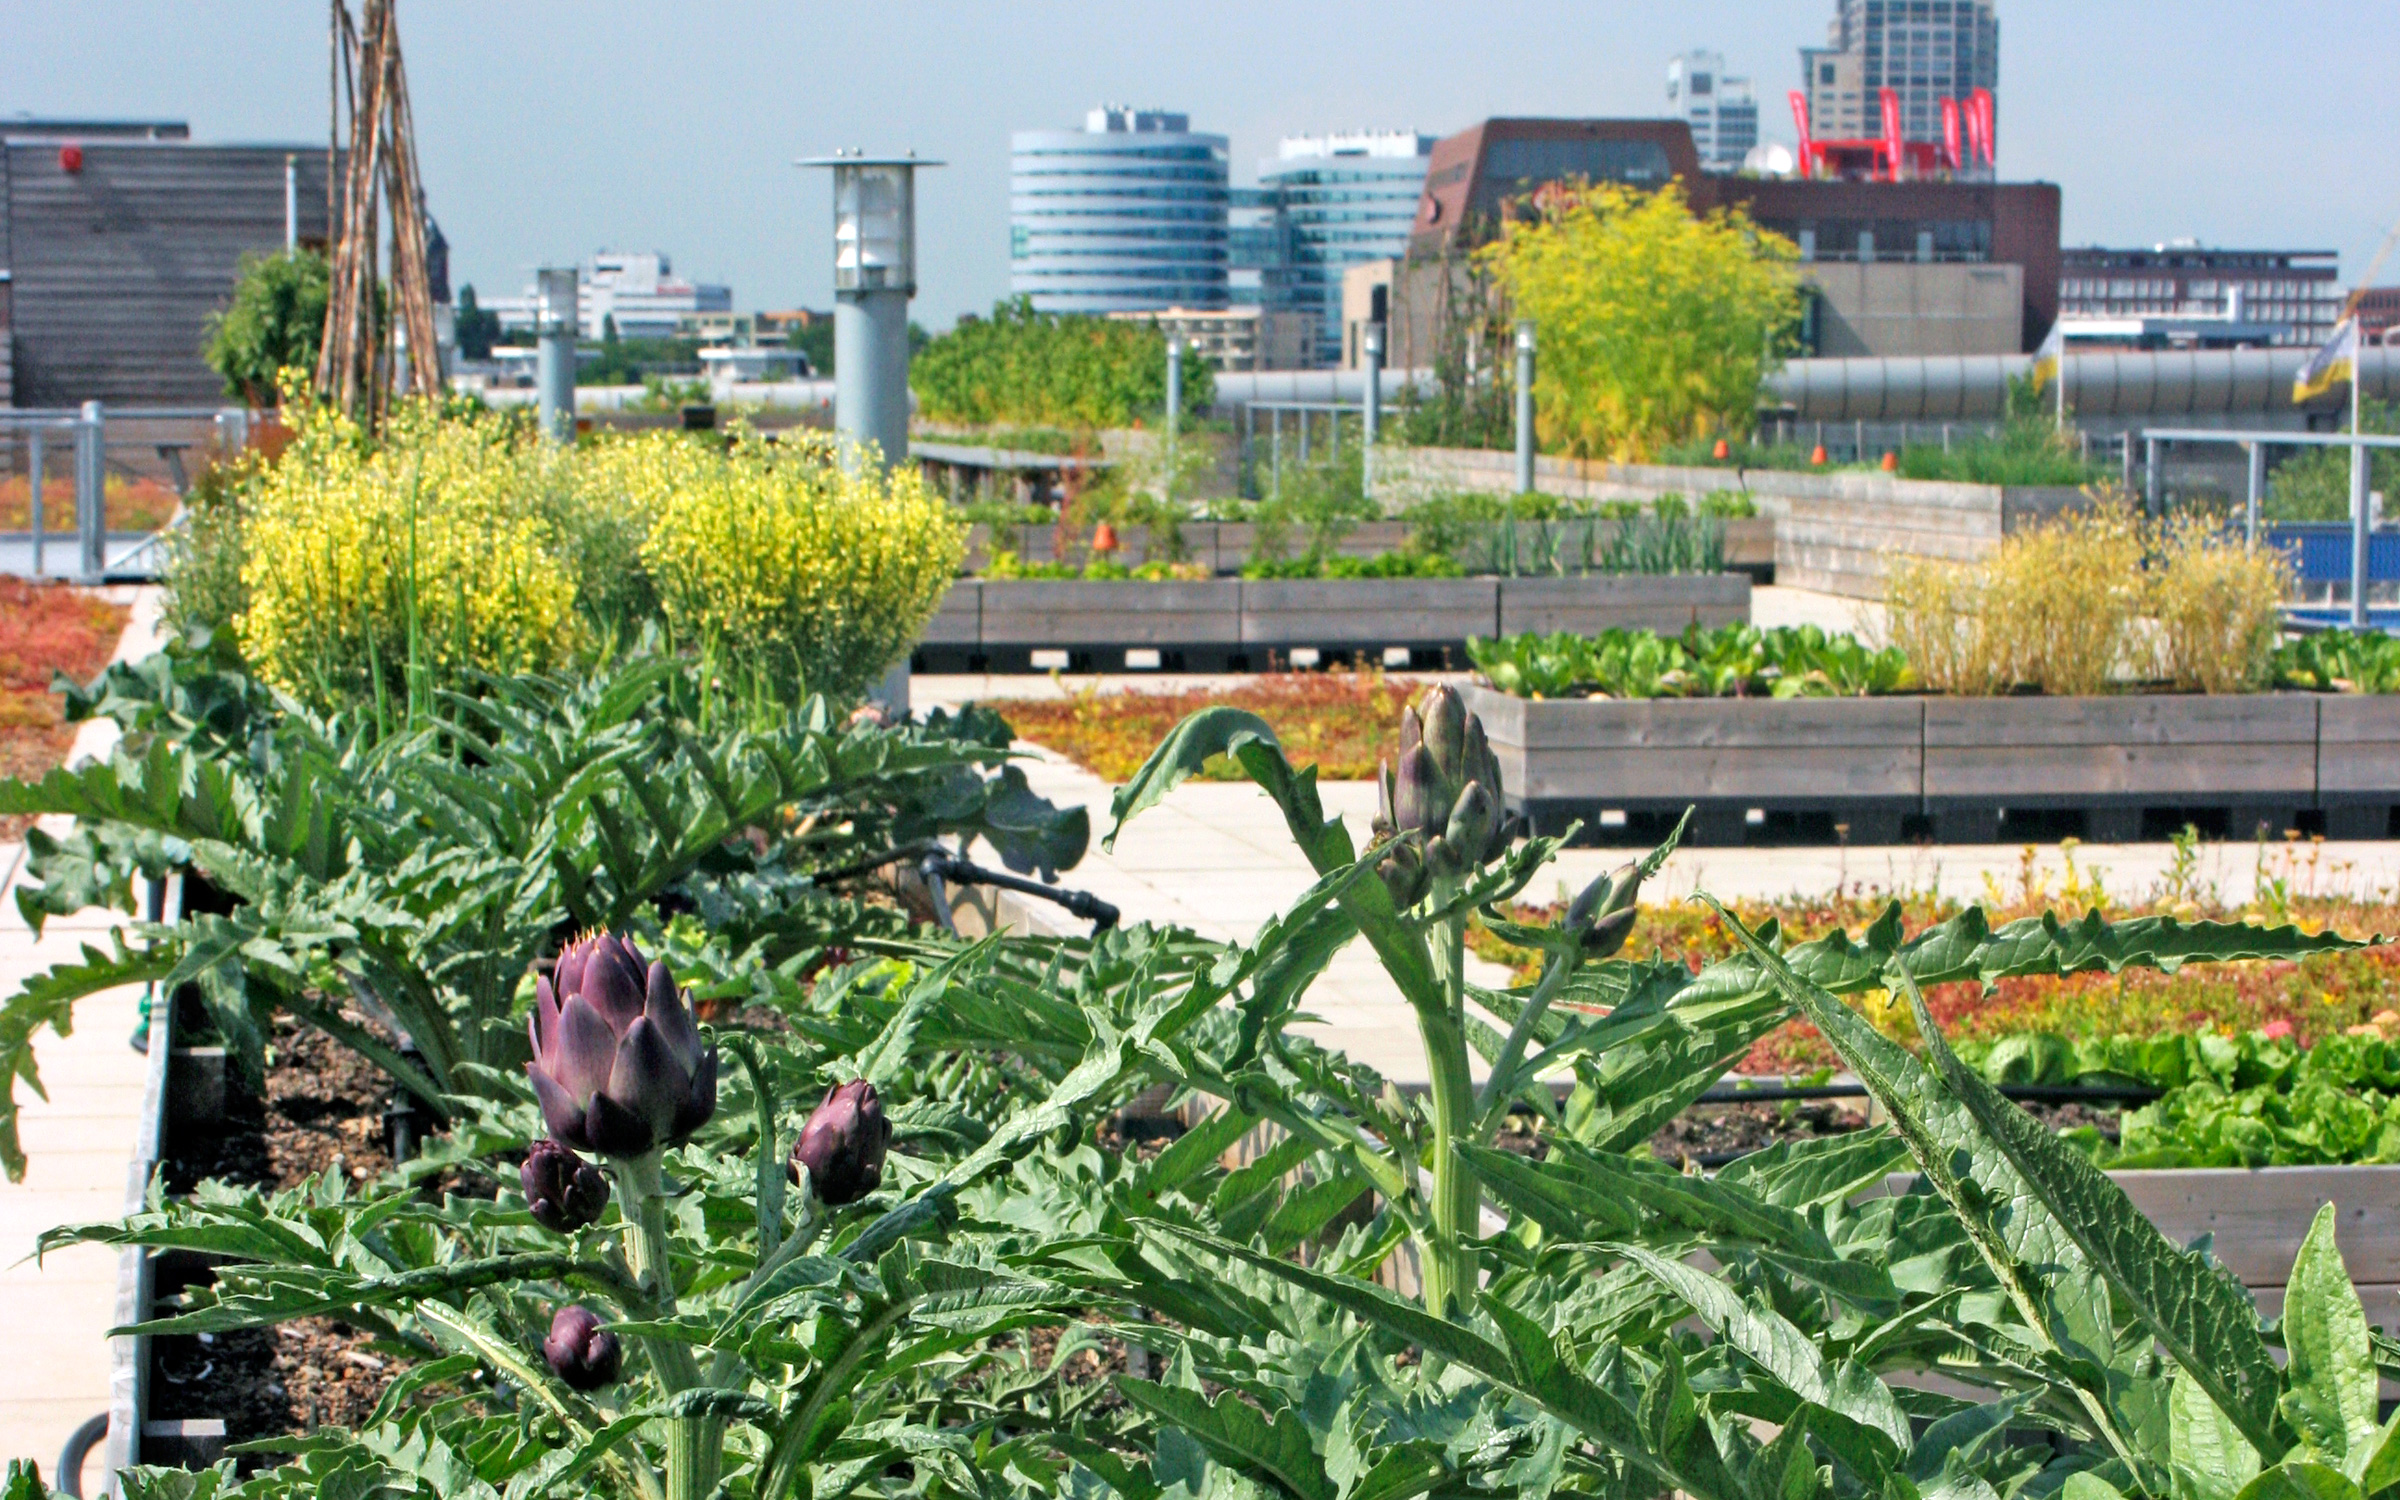 Artichokes and other plant beds on a rooftop